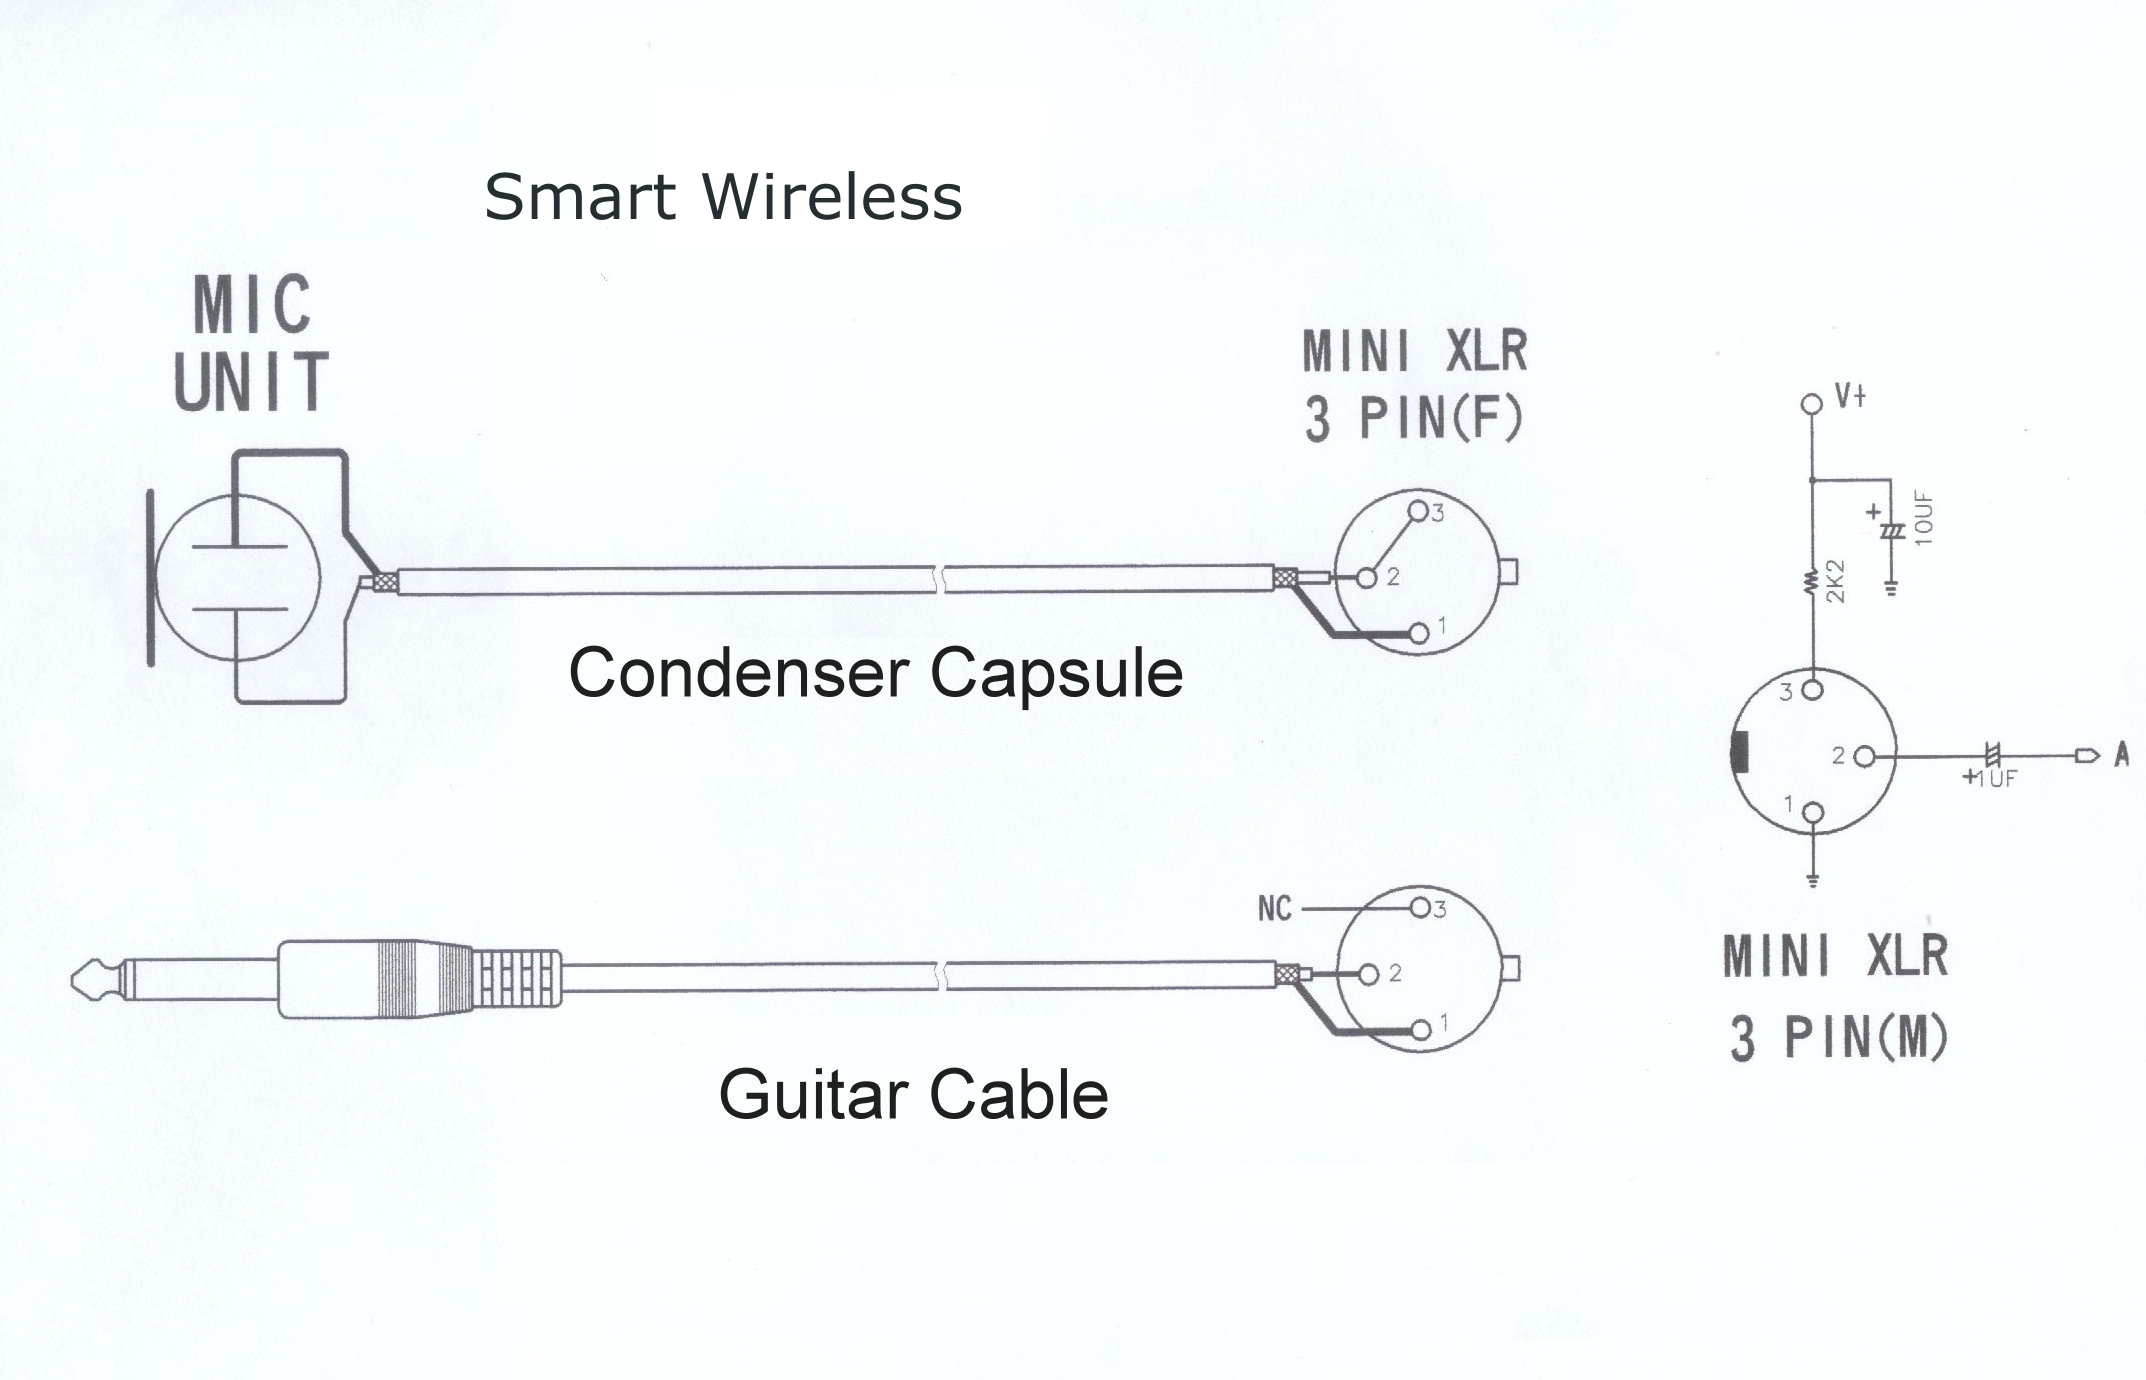 XLR Balanced Phone Unbalanced xlr balanced phone unbalanced jpg xlr cable wiring diagram at aneh.co